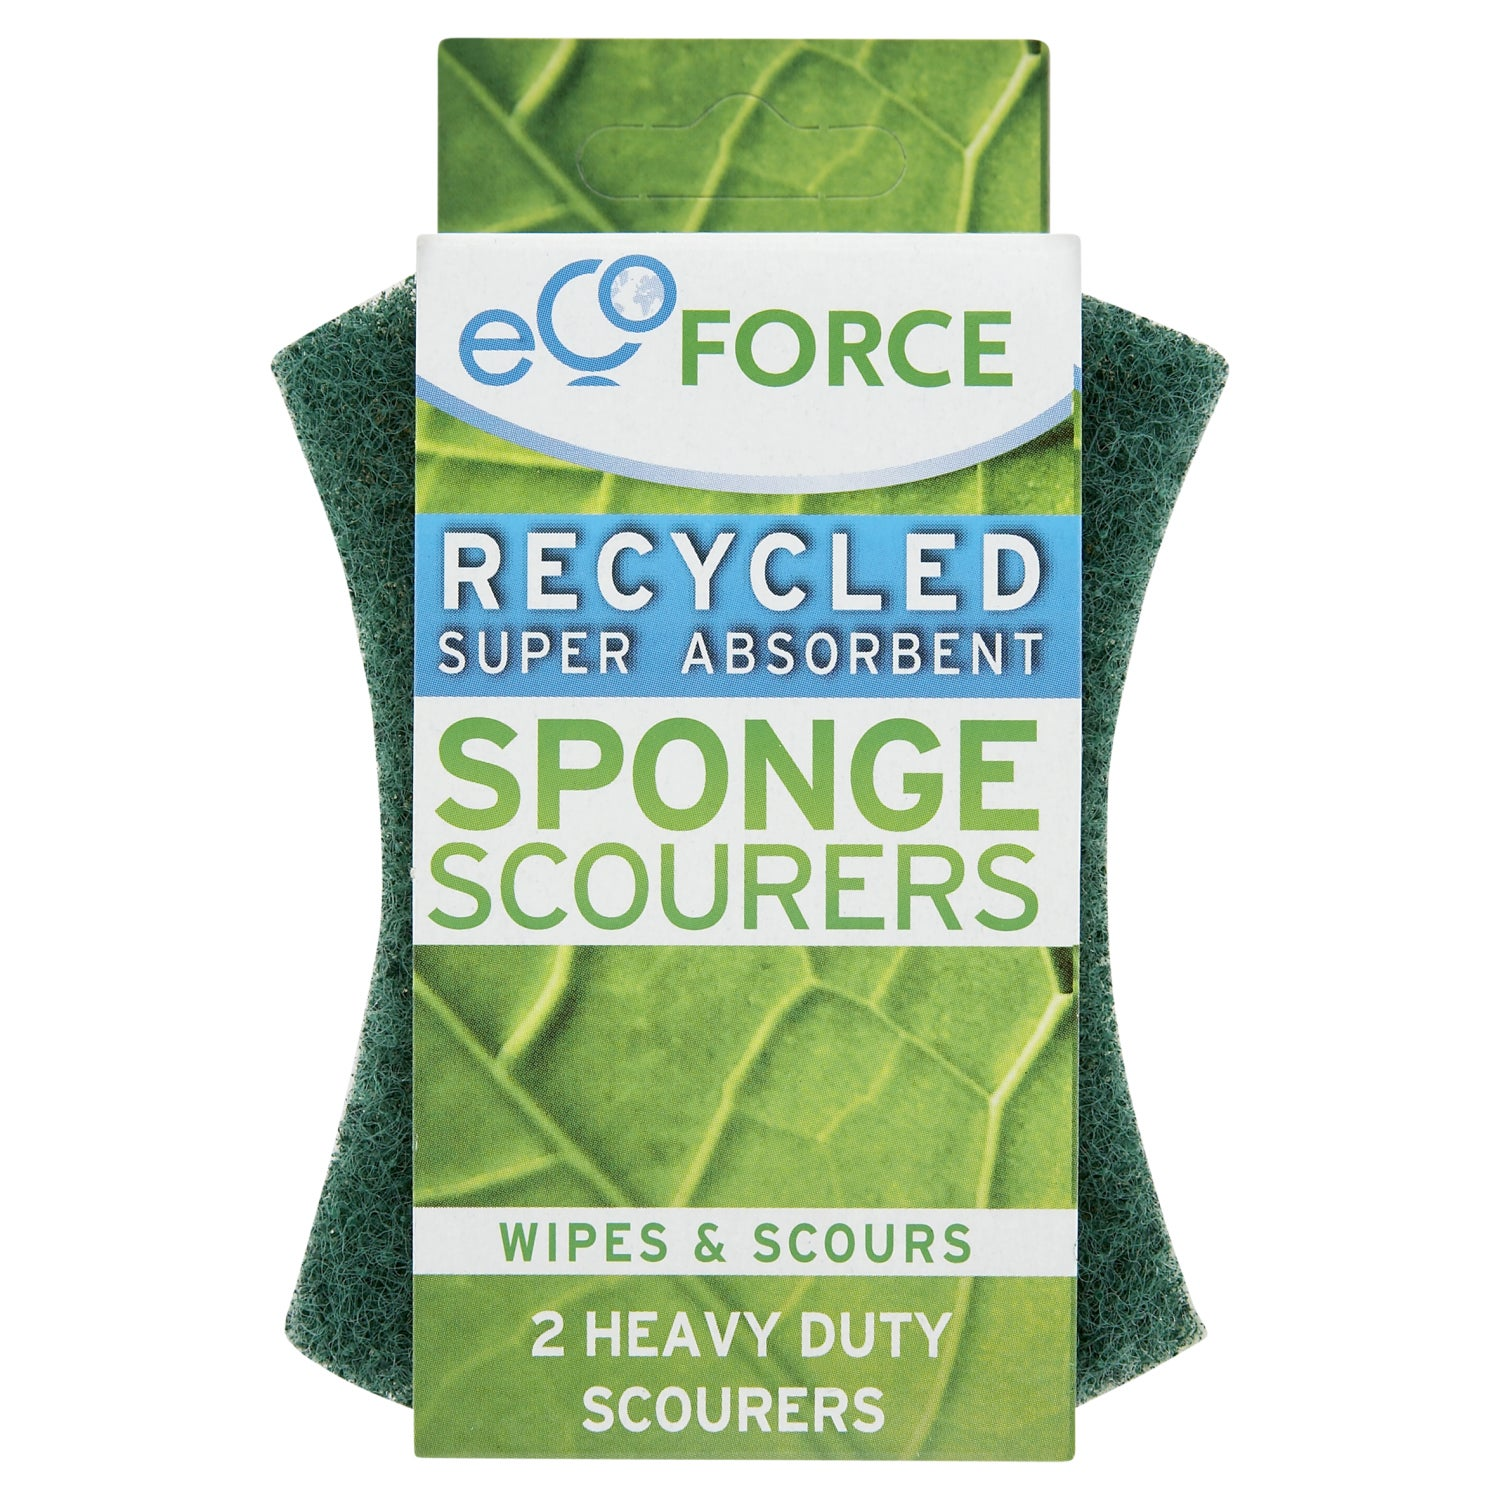 Pack of 2 EcoForce Recycled Super Absorbent Scourers